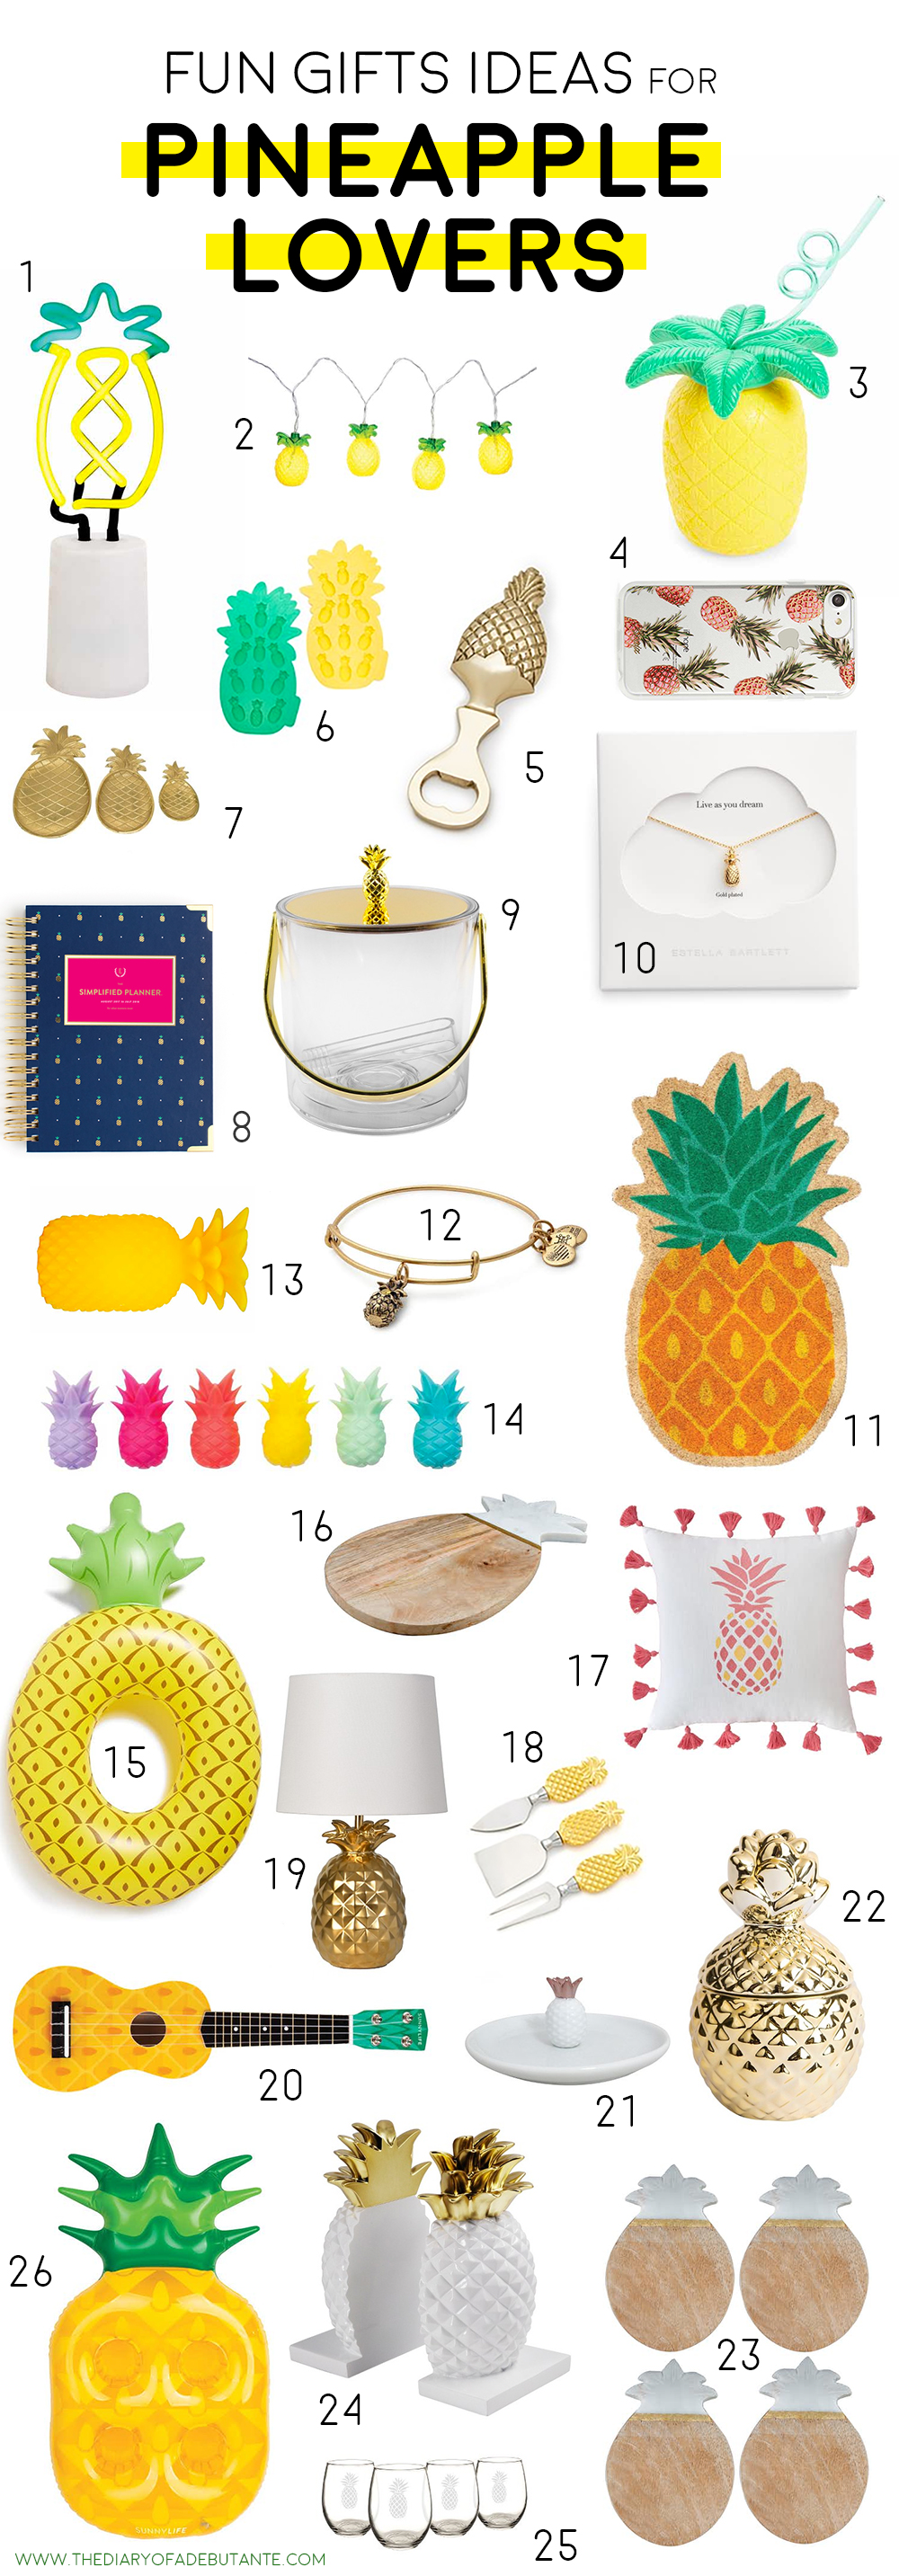 26 cute housewarming gift ideas for pineapple lovers everywhere